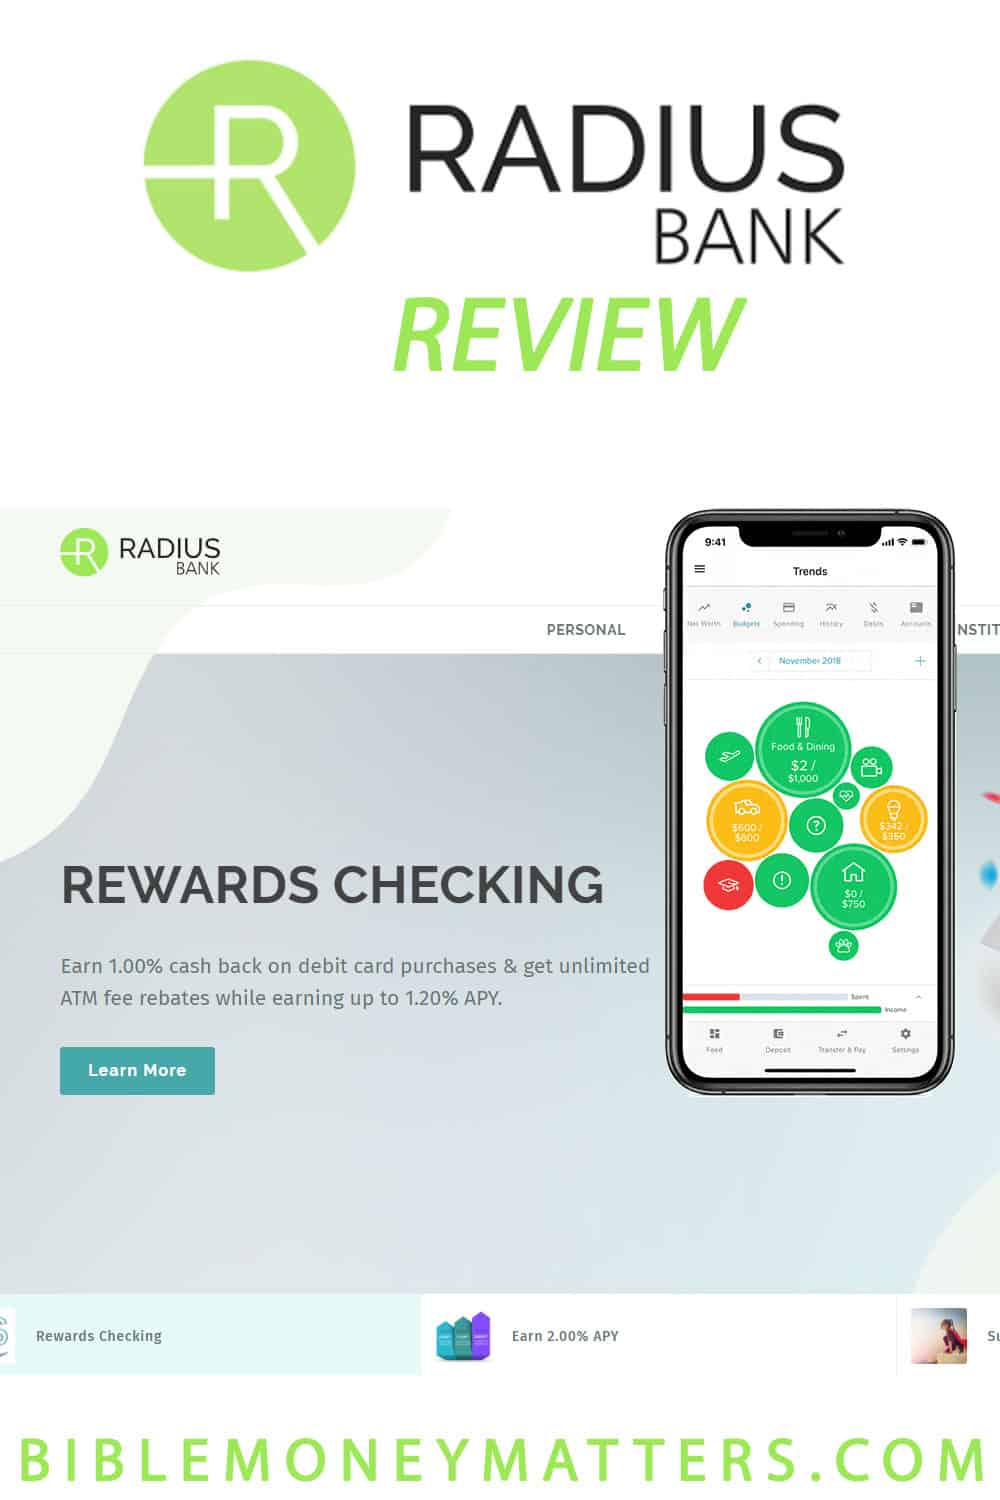 Radius Bank Review: Free Cash Back Rewards Checking